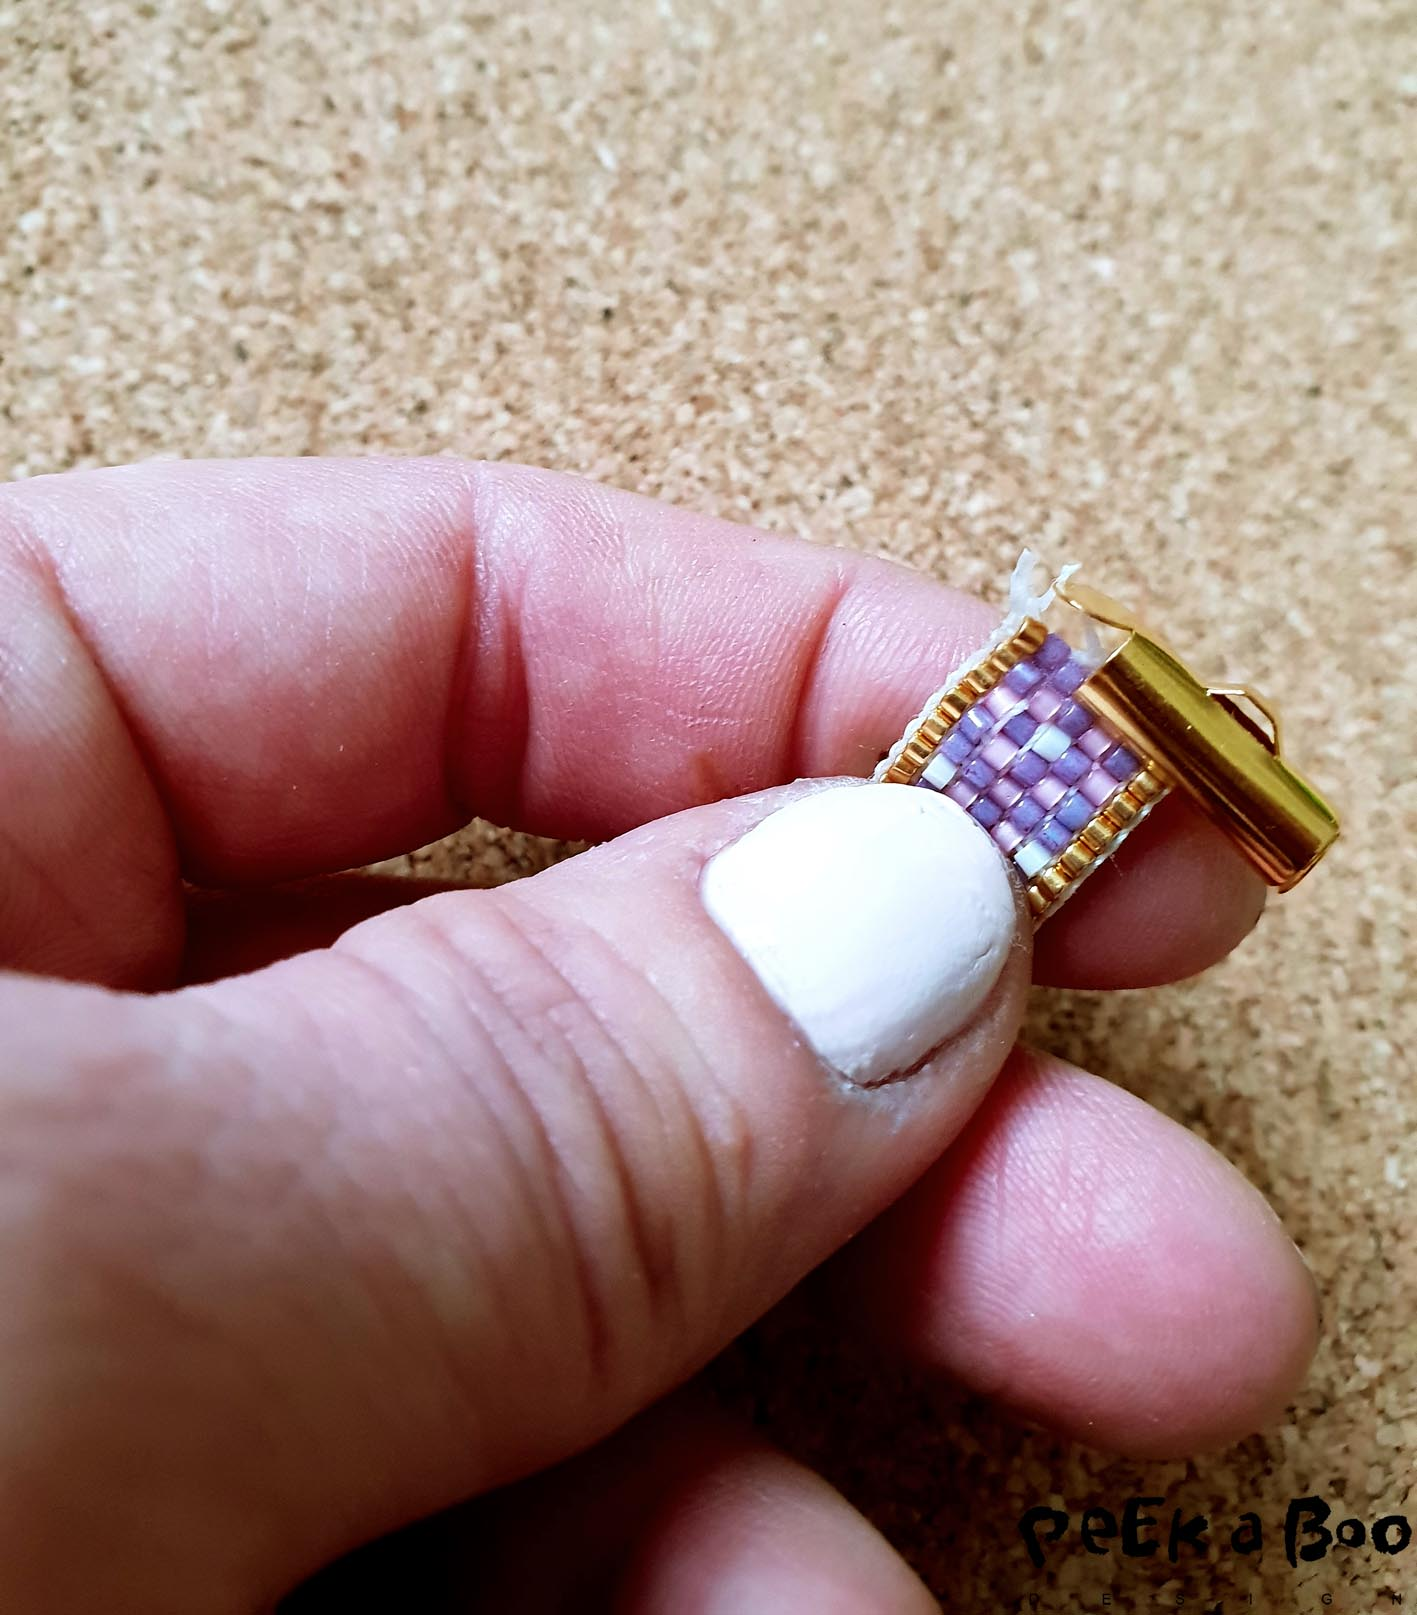 Now the end pieces must be fitted to the ends of the bracelet. The open end is driven over the last row of beads. And at the other end, drive an end piece over the first row of beads.